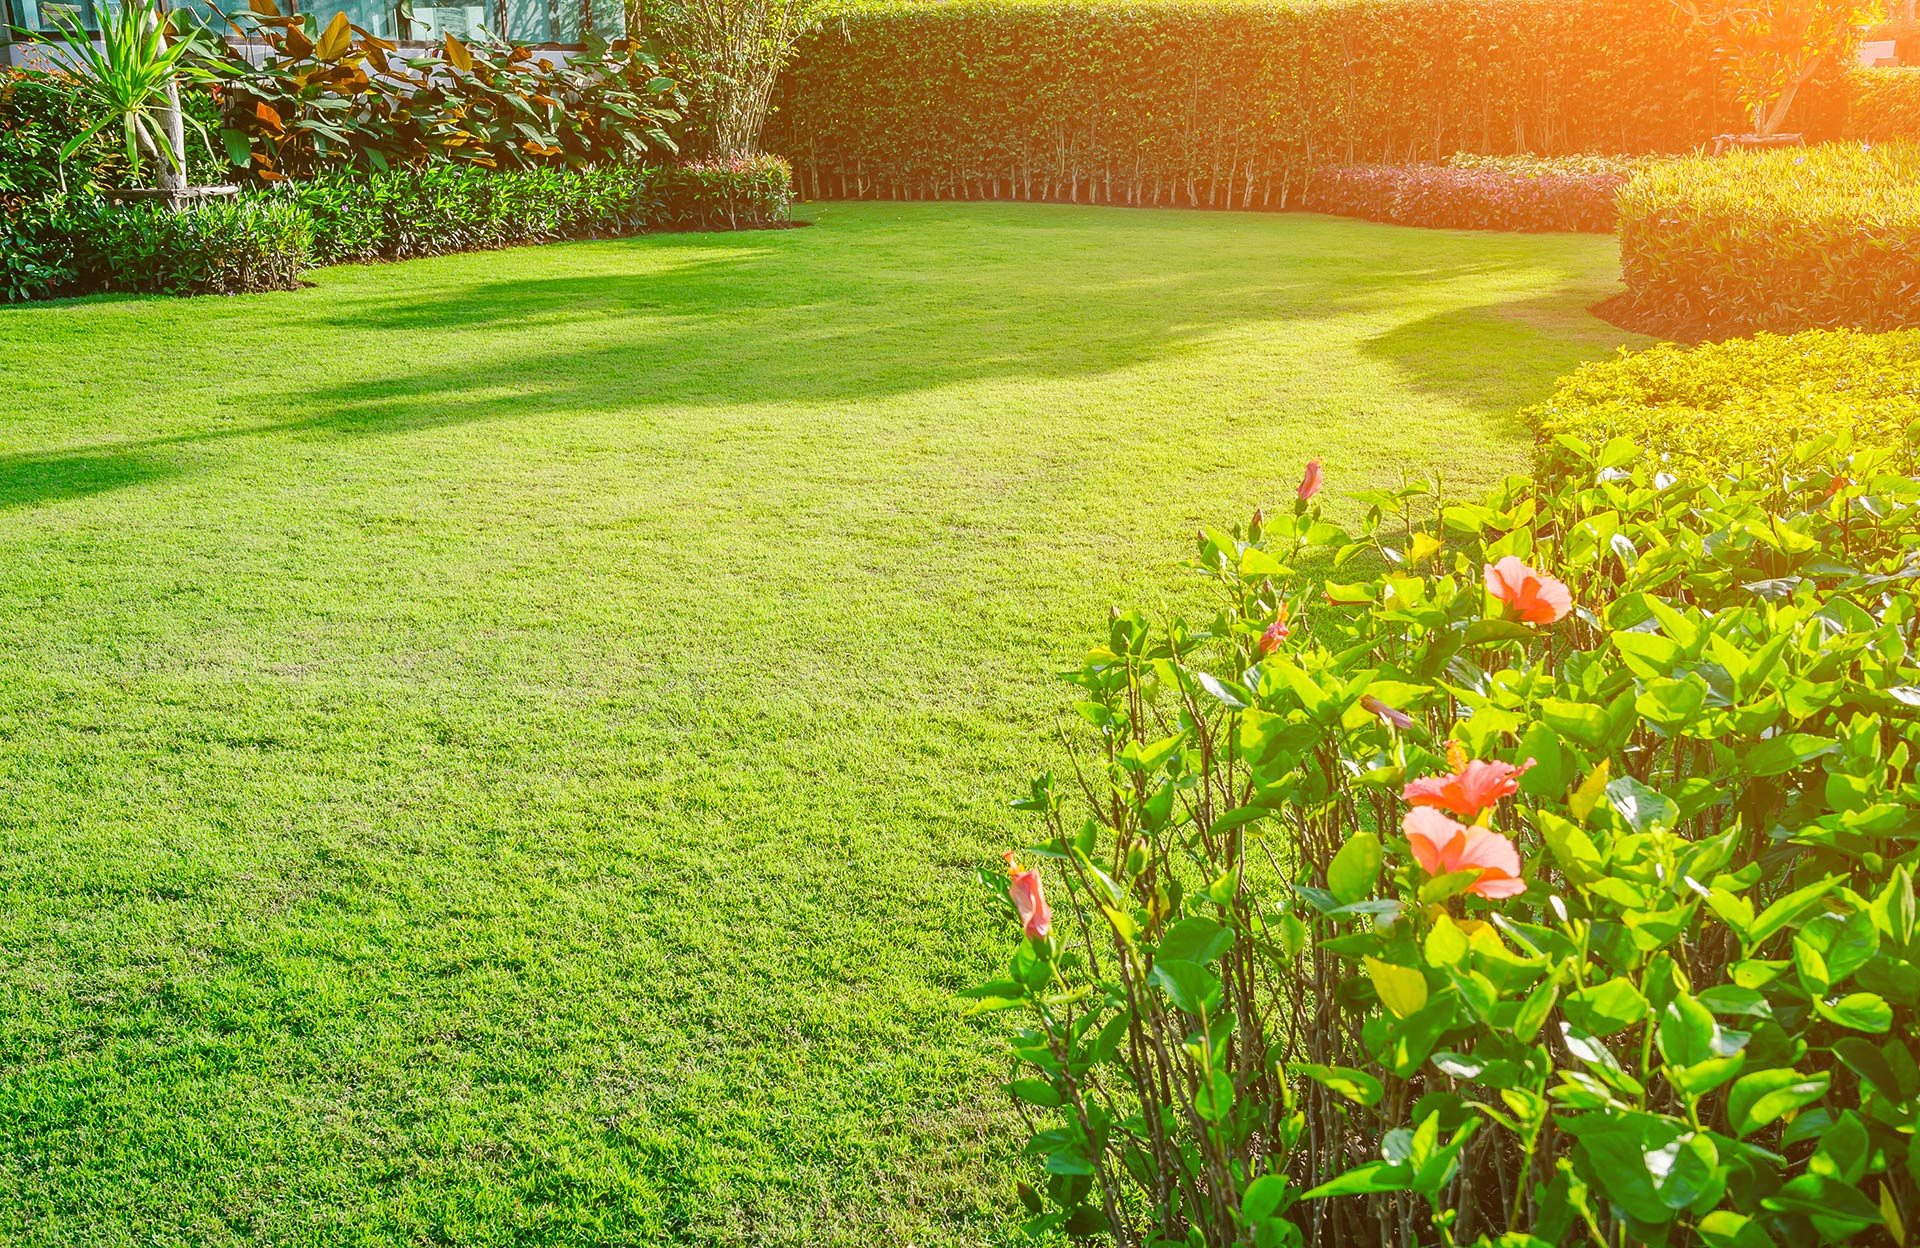 A large yard with healthy green grass